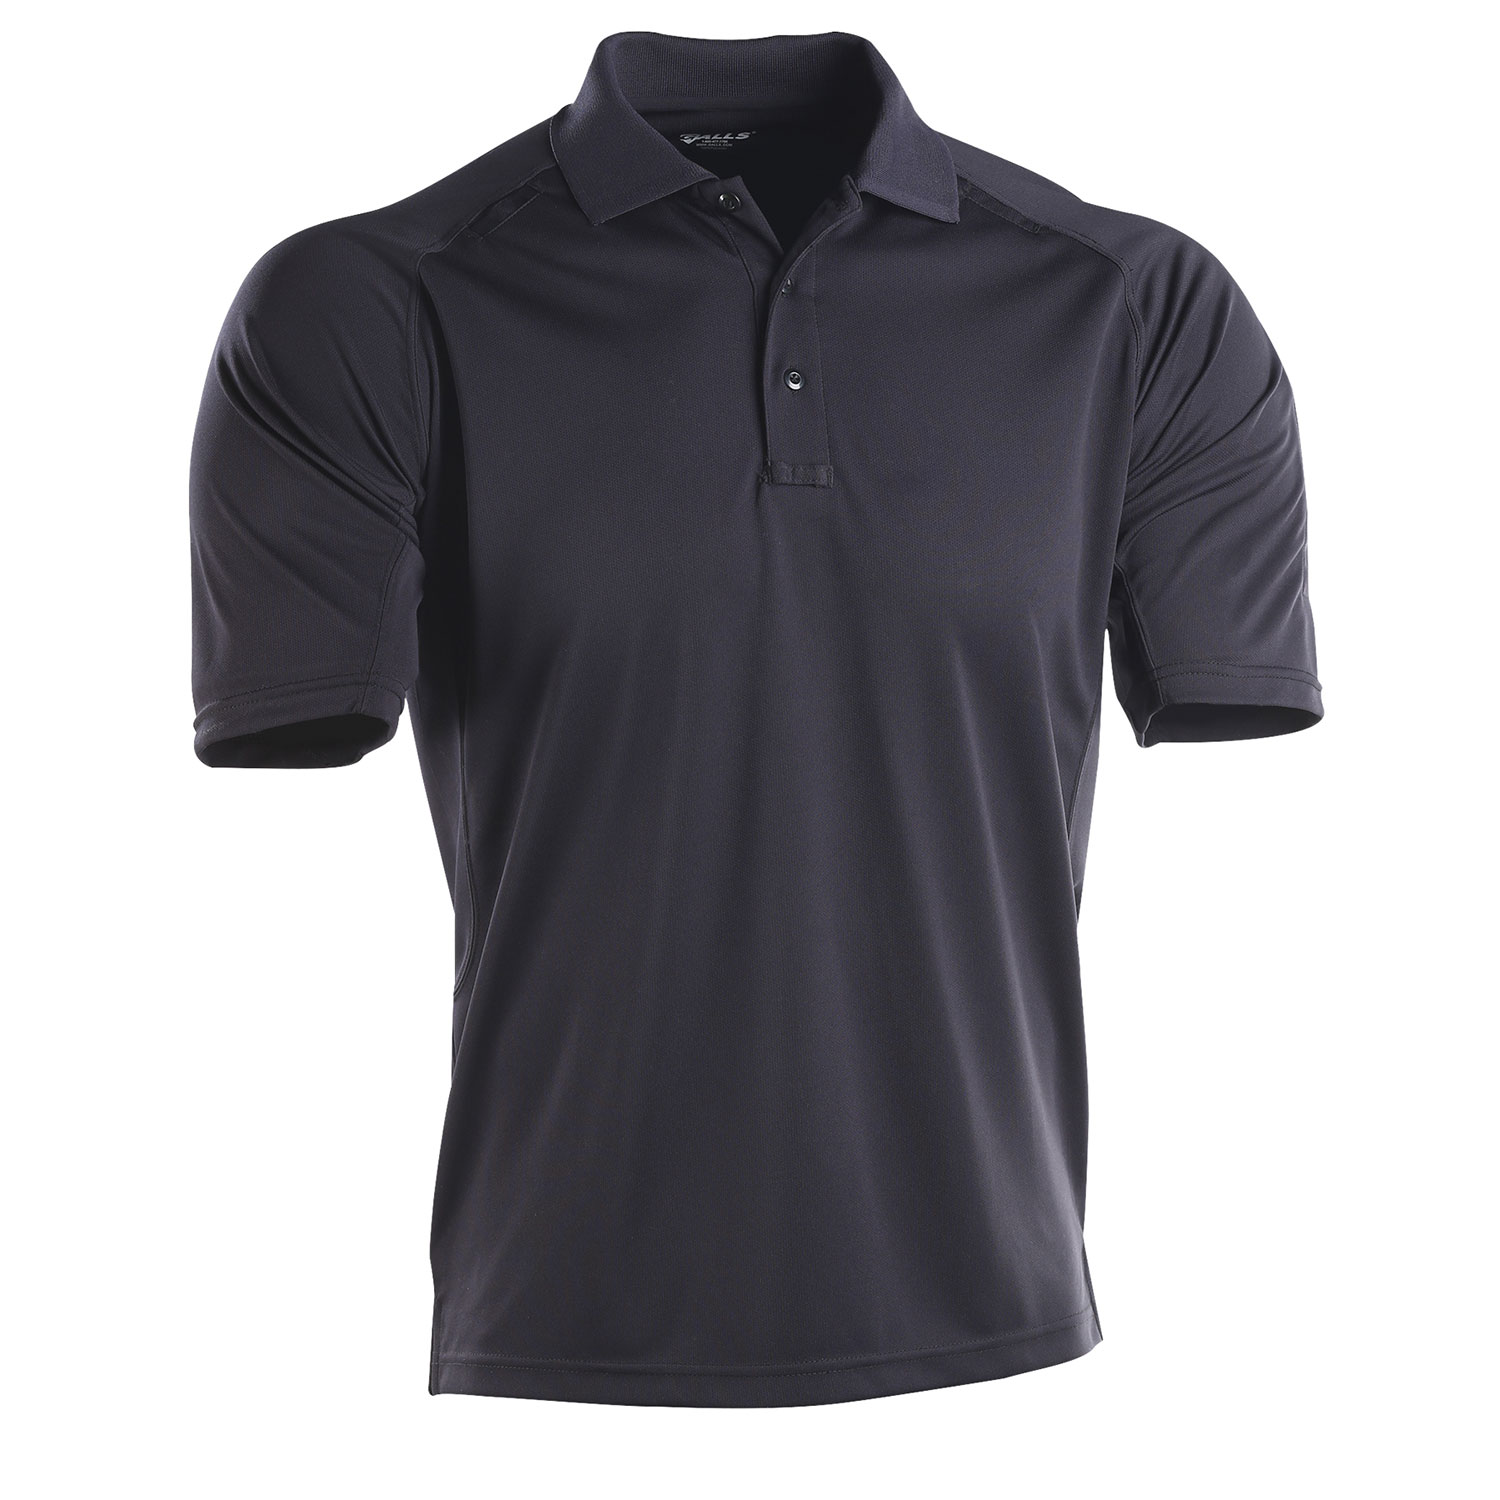 Galls Tac Force Lightweight Polo